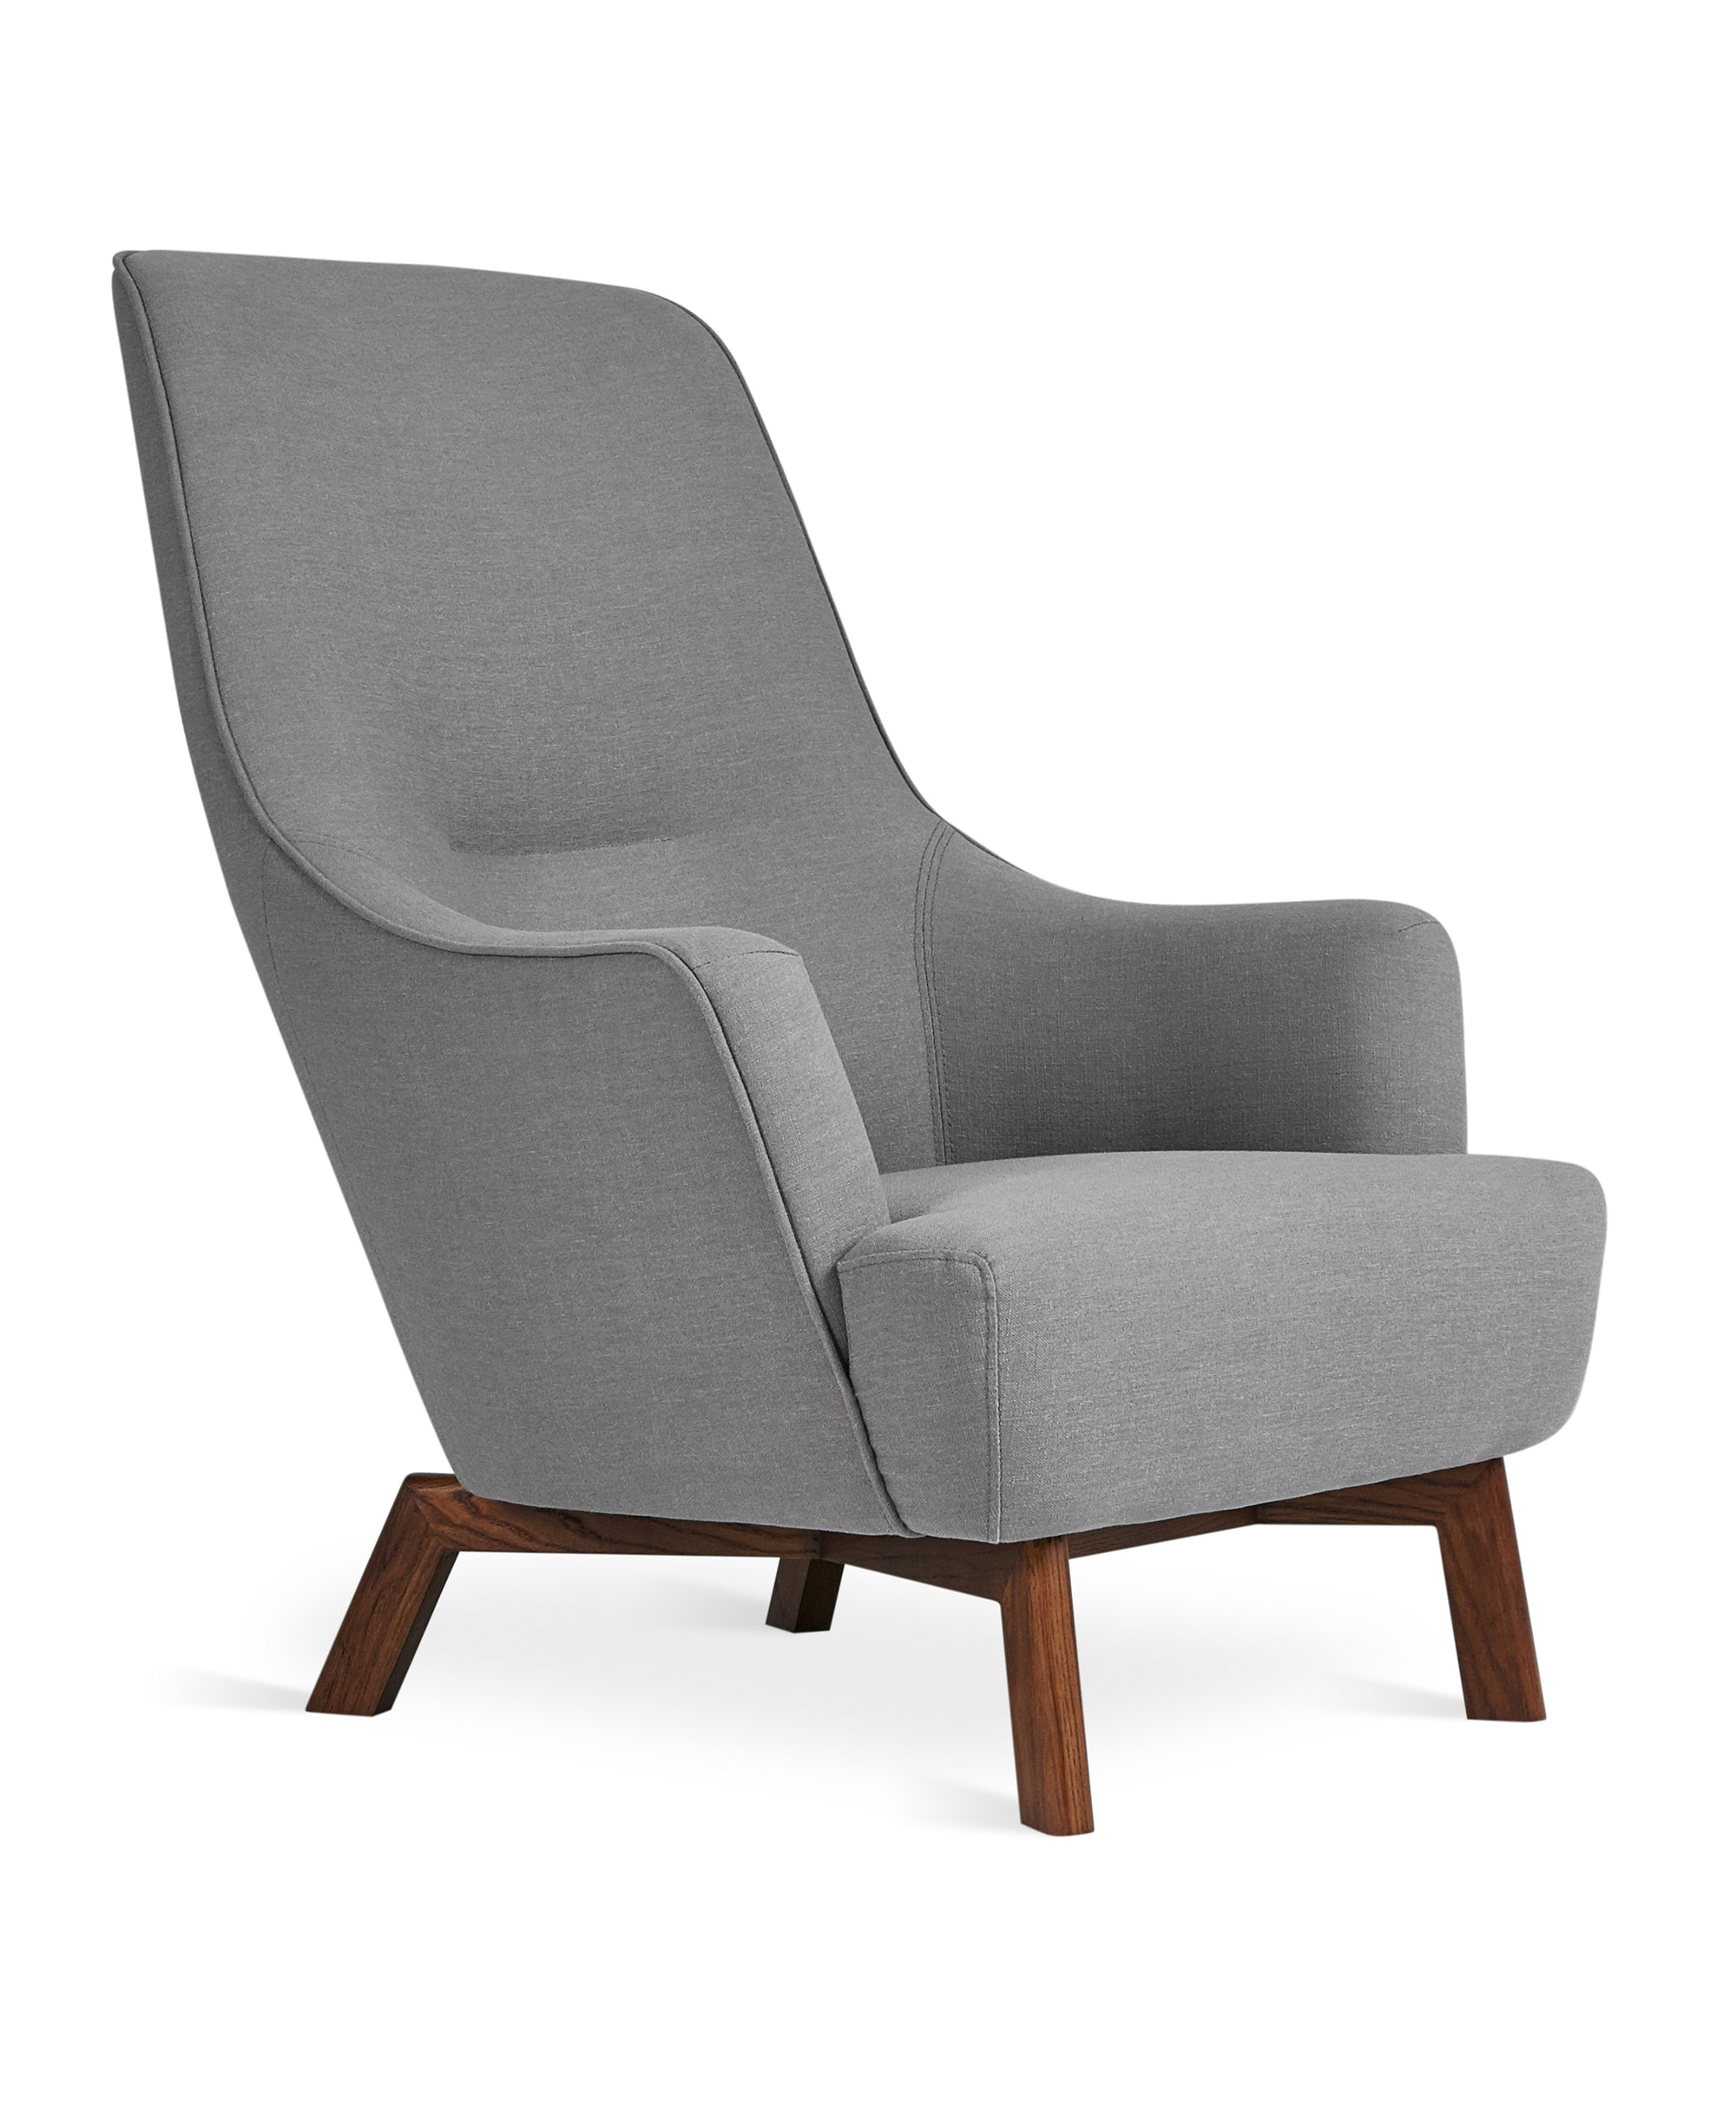 Gus* Modern Hilary Chair - Rug & Weave